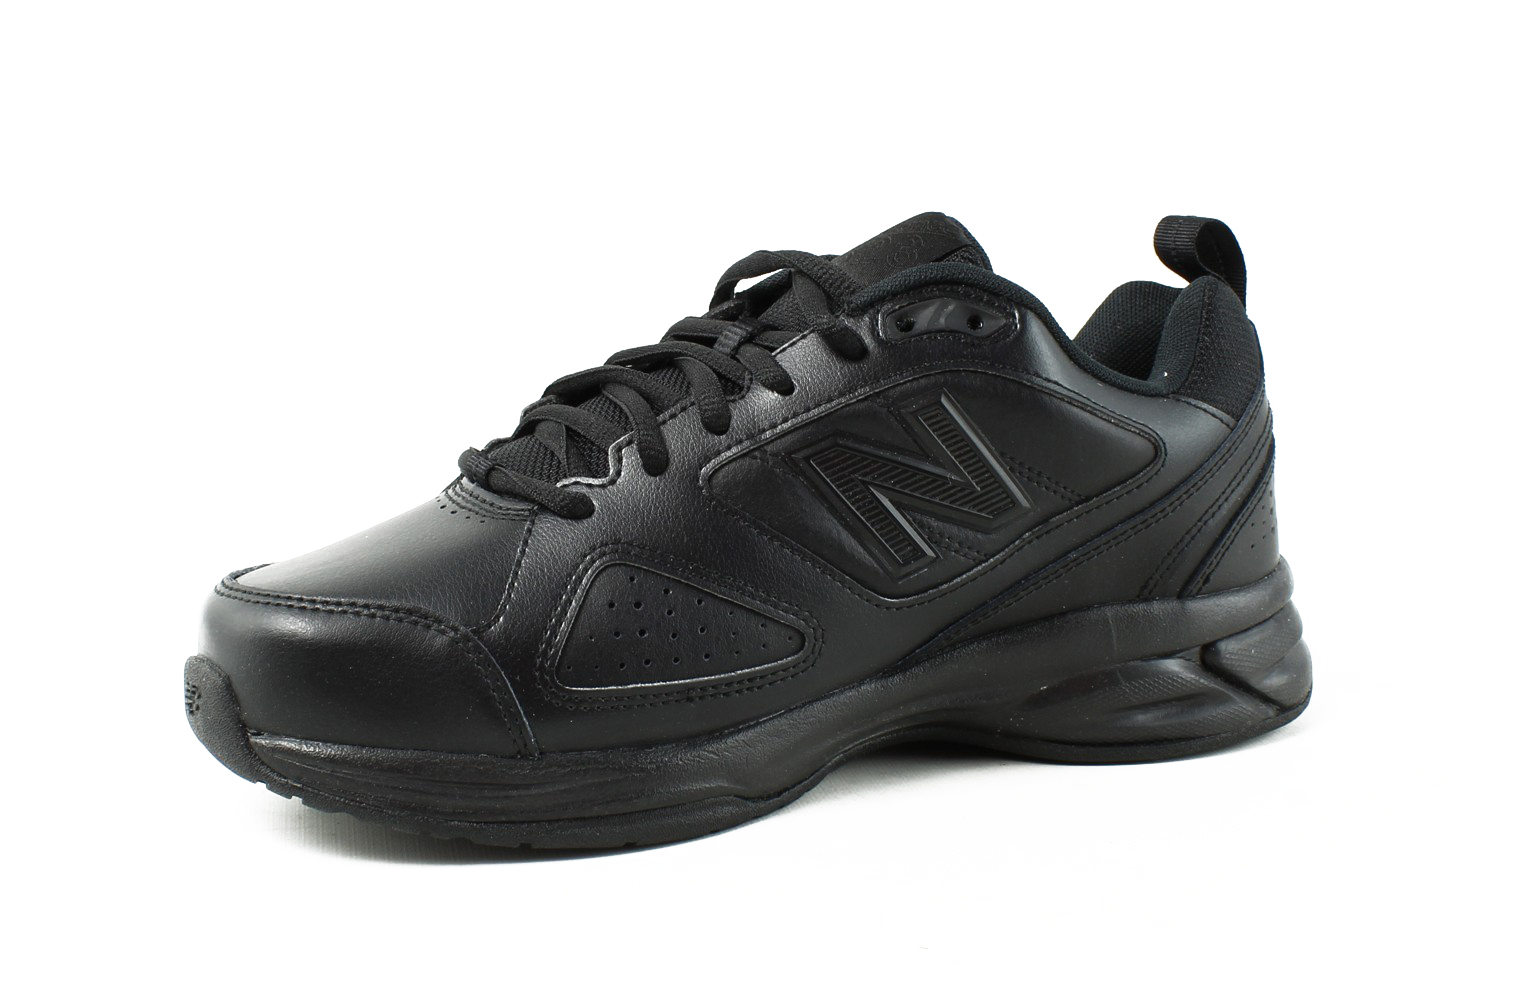 893f083a8334 ... New Balance Mens - BlackLeather Walking Shoes Size Size Size 7.5 (3E)  (347115 ...